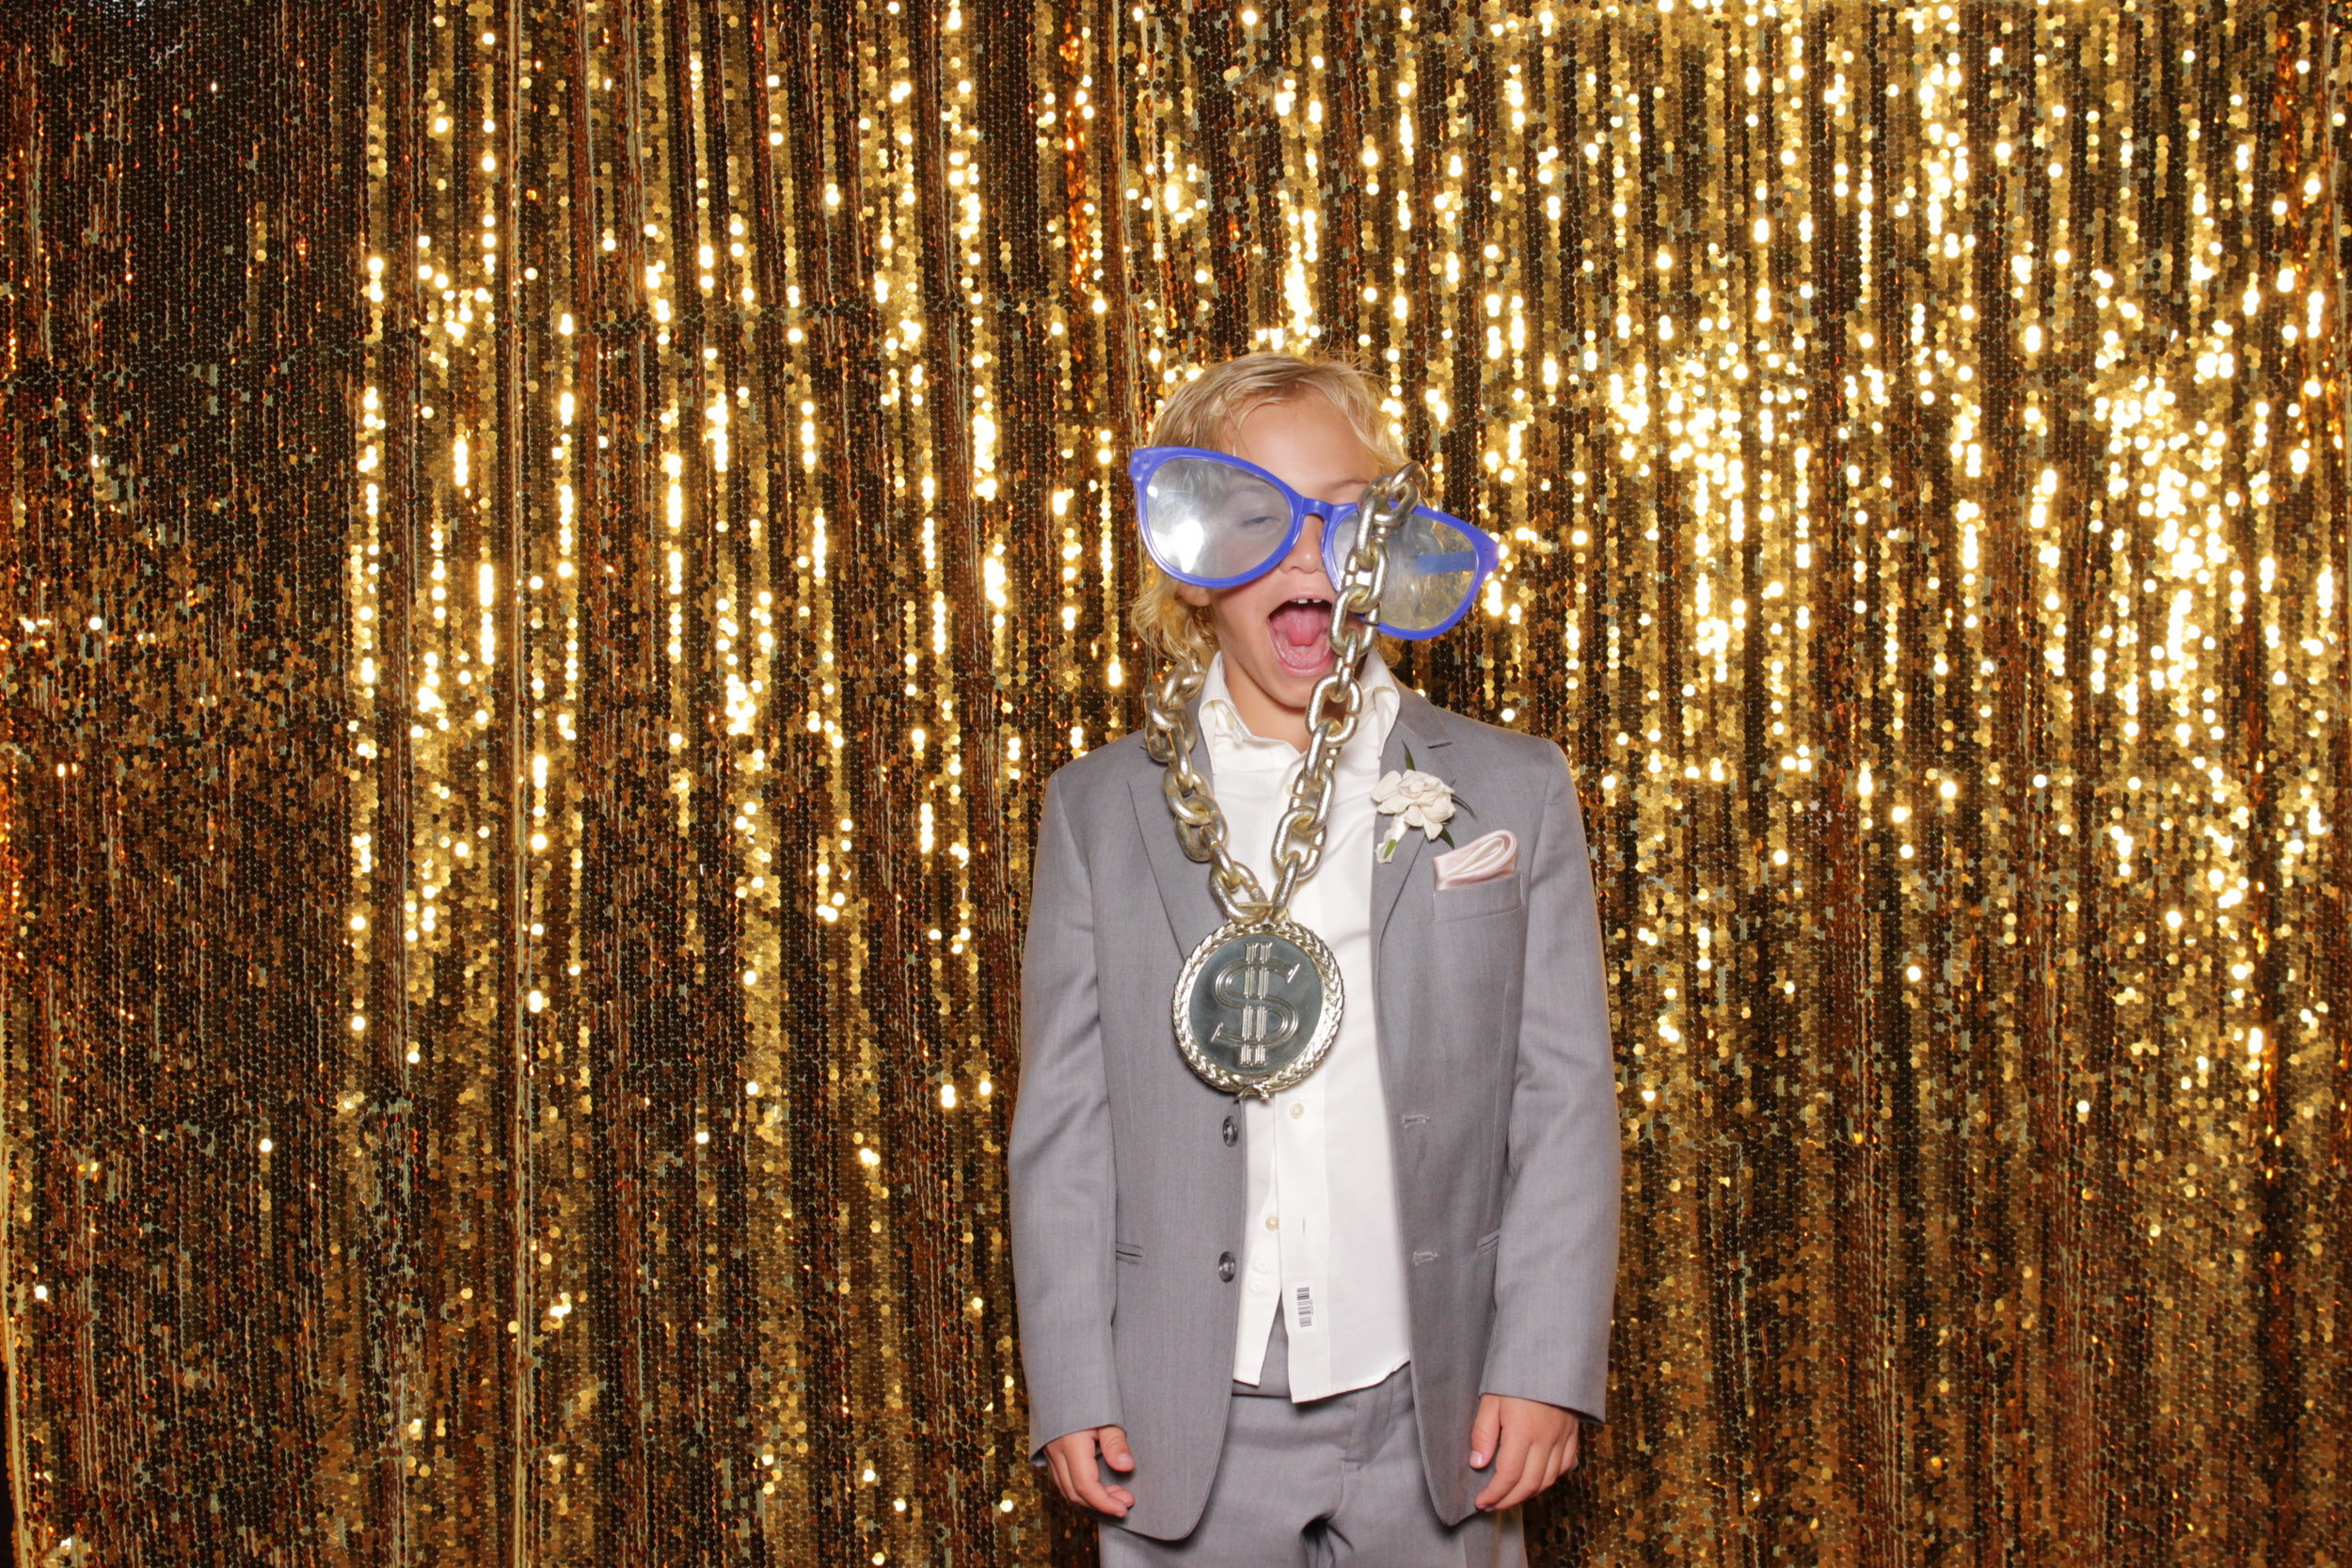 photo-booths-in-chico-rental-wedding-awesome-kid